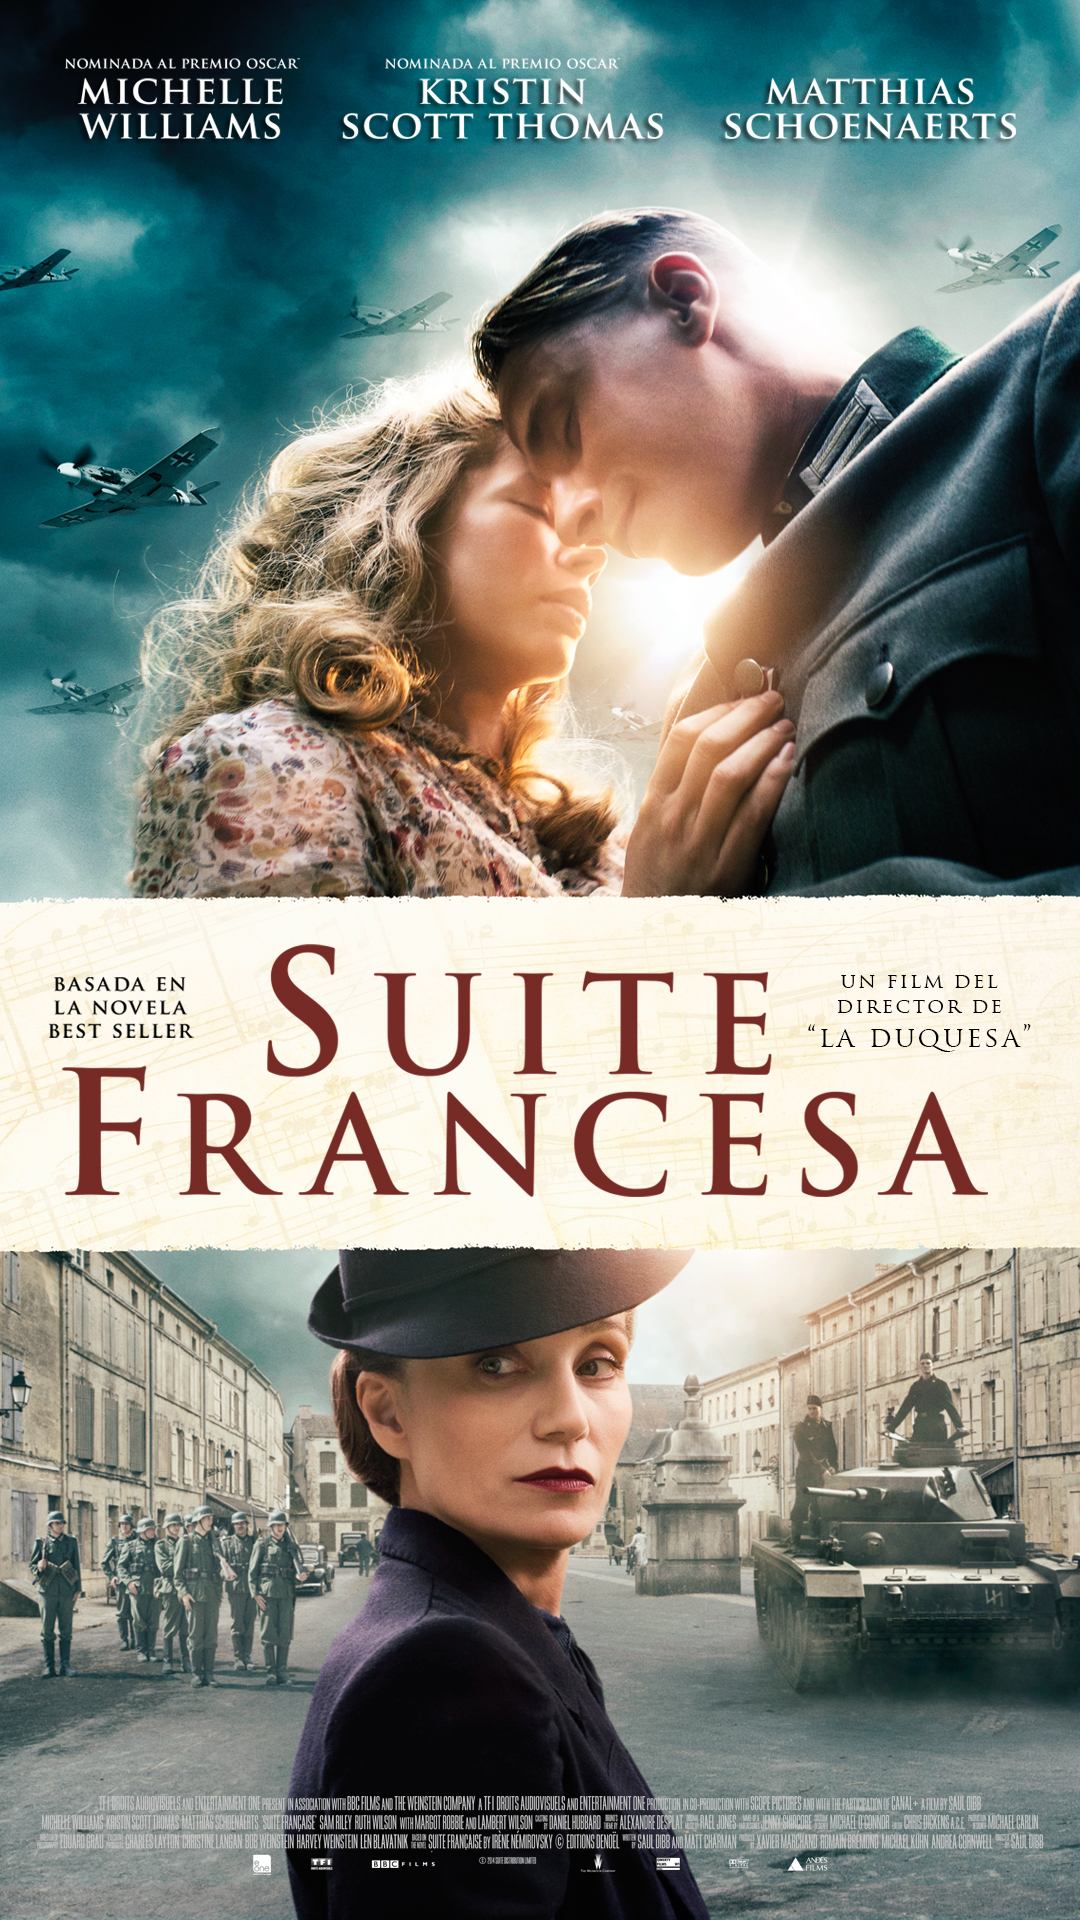 https://www.andesfilms.com.pe/suite-francesa-3112/